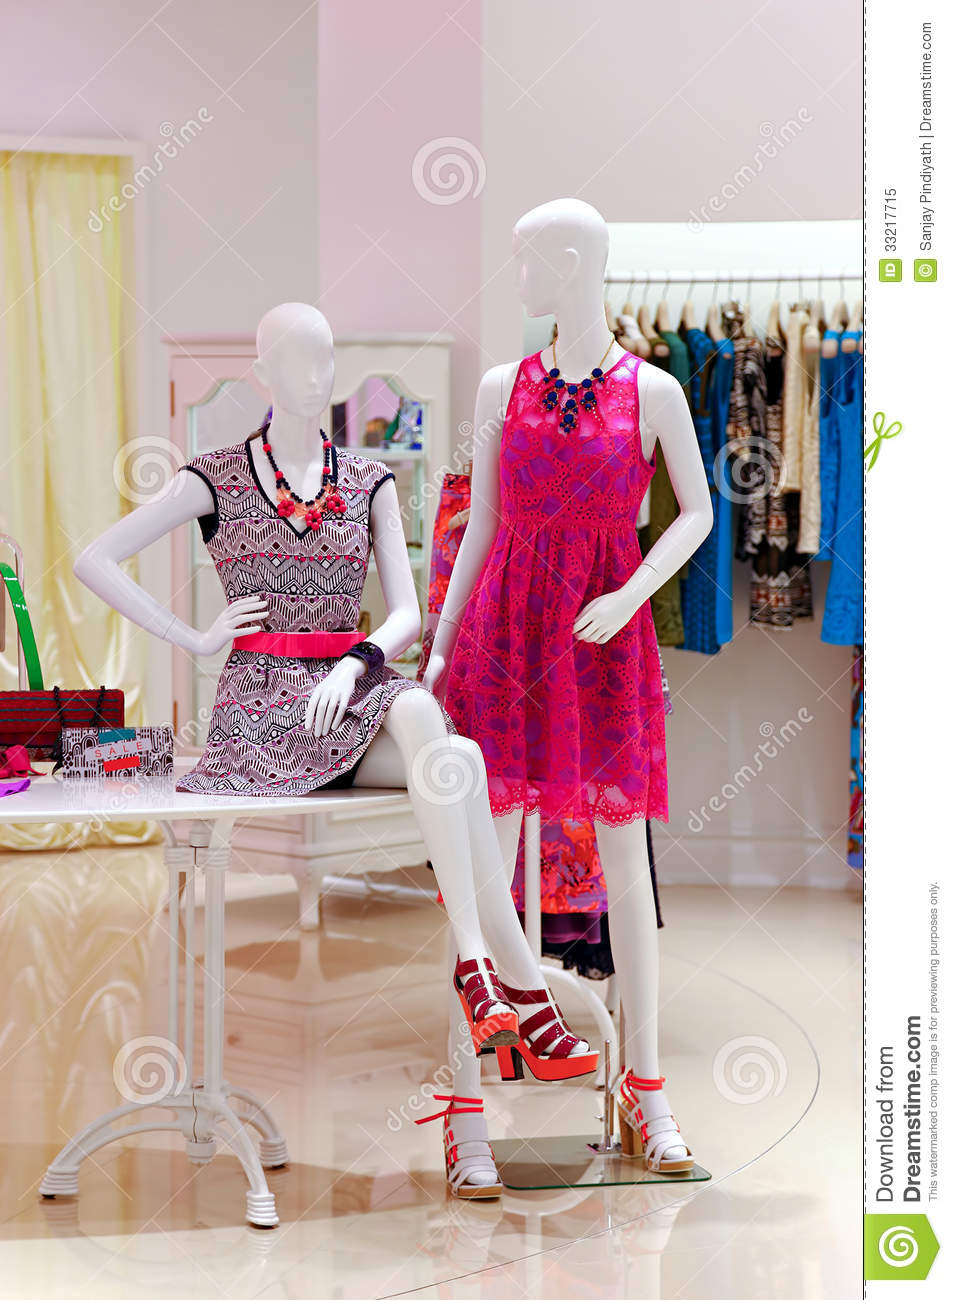 Trending clothing stores. Cheap clothing stores